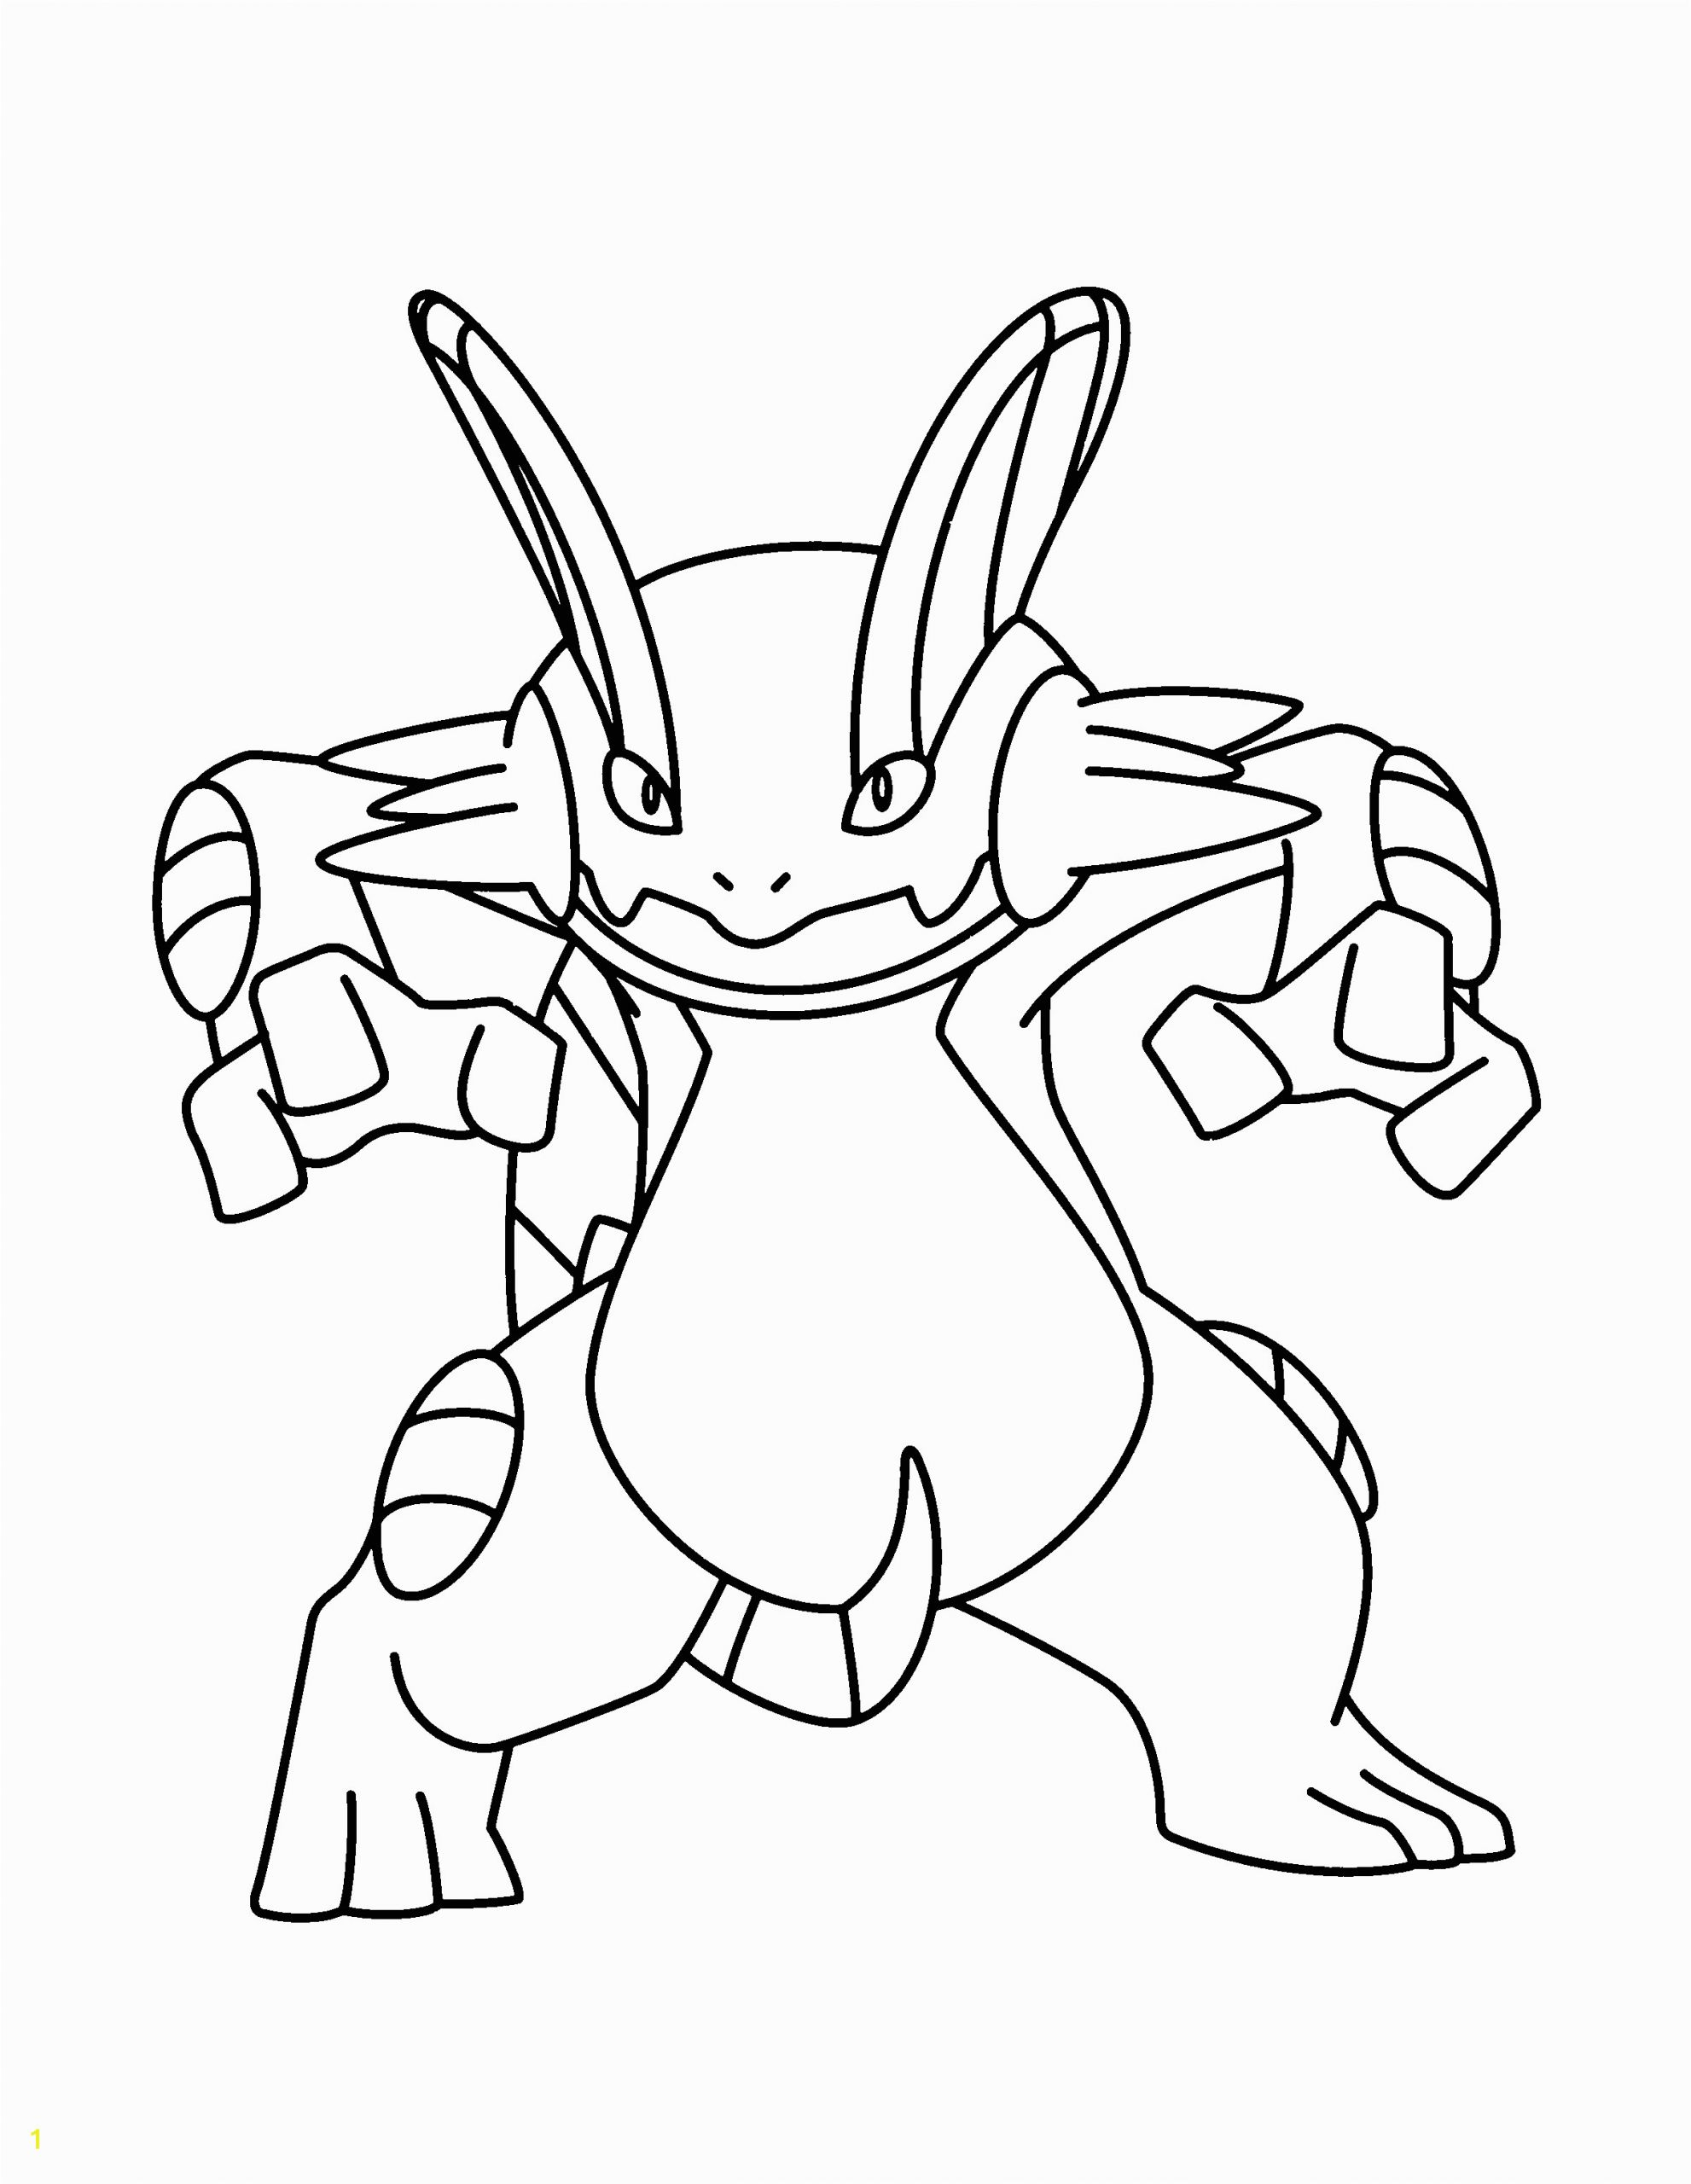 Mewtwo Pokemon Coloring Pages | divyajanani.org